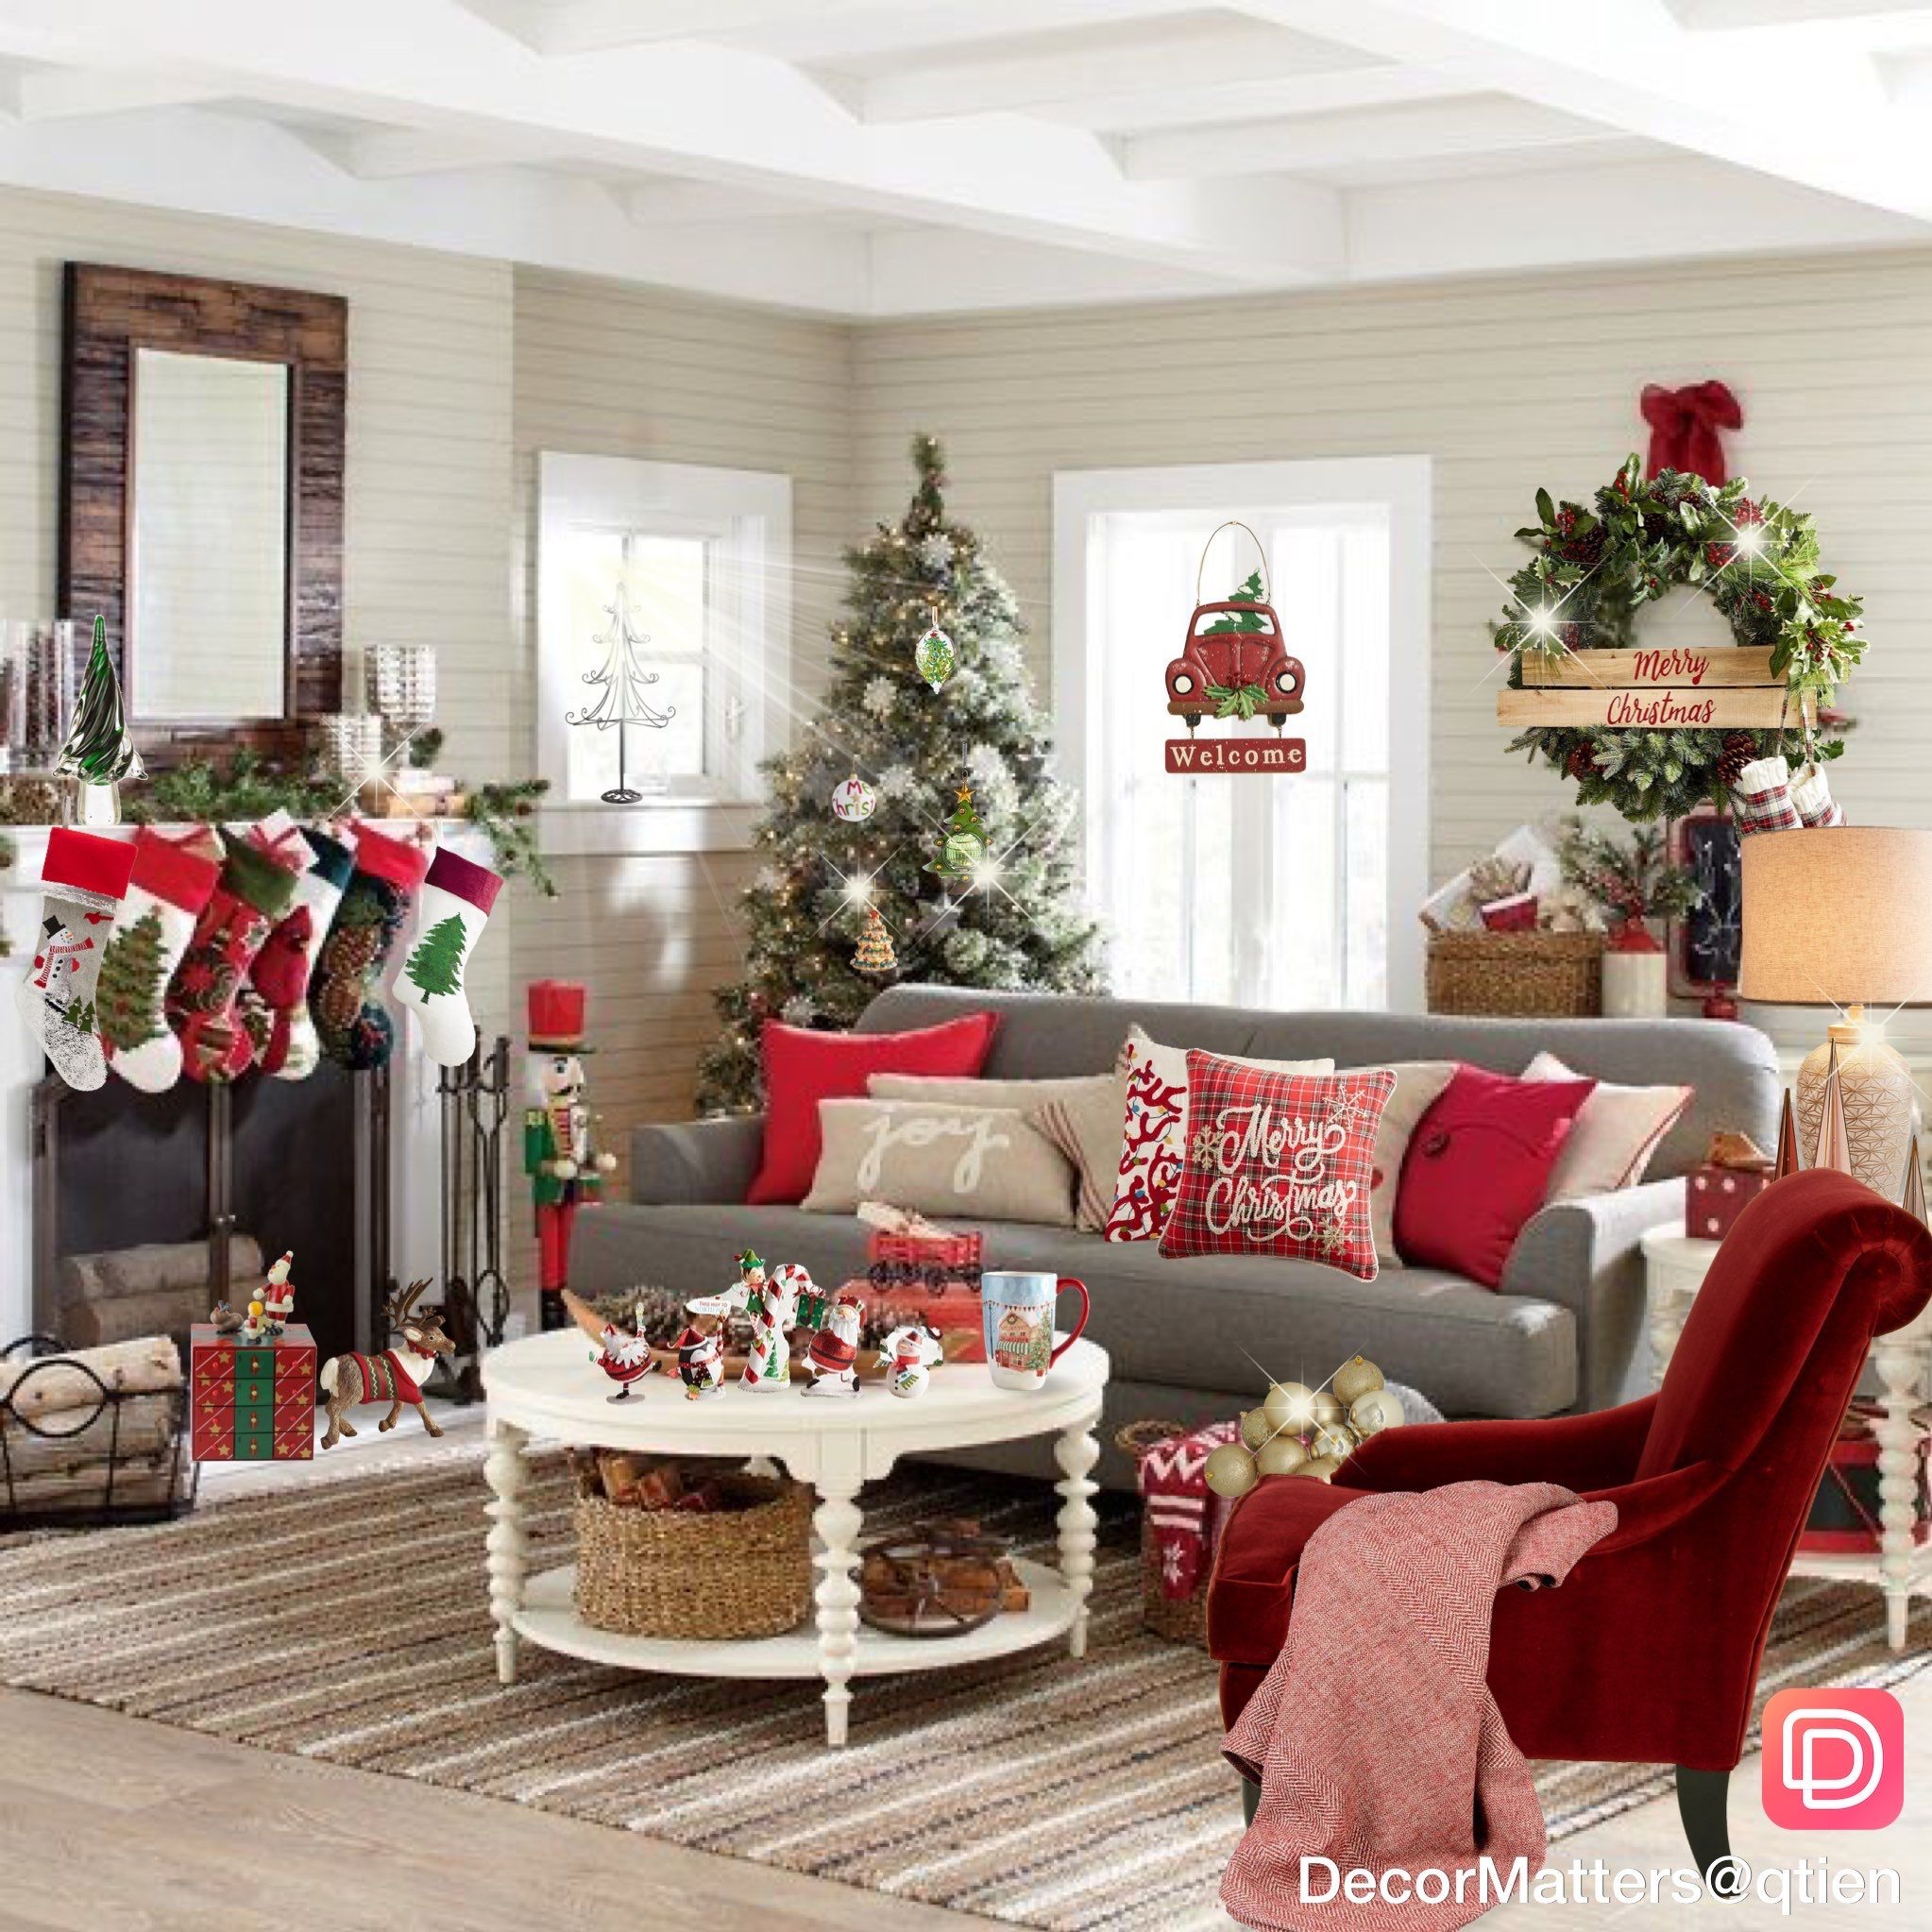 5 Mobile Lightroom Presetsholiday Presetschristmas Etsy In 2021 Christmas Decorations Living Room Christmas Room Decor Christmas Living Rooms